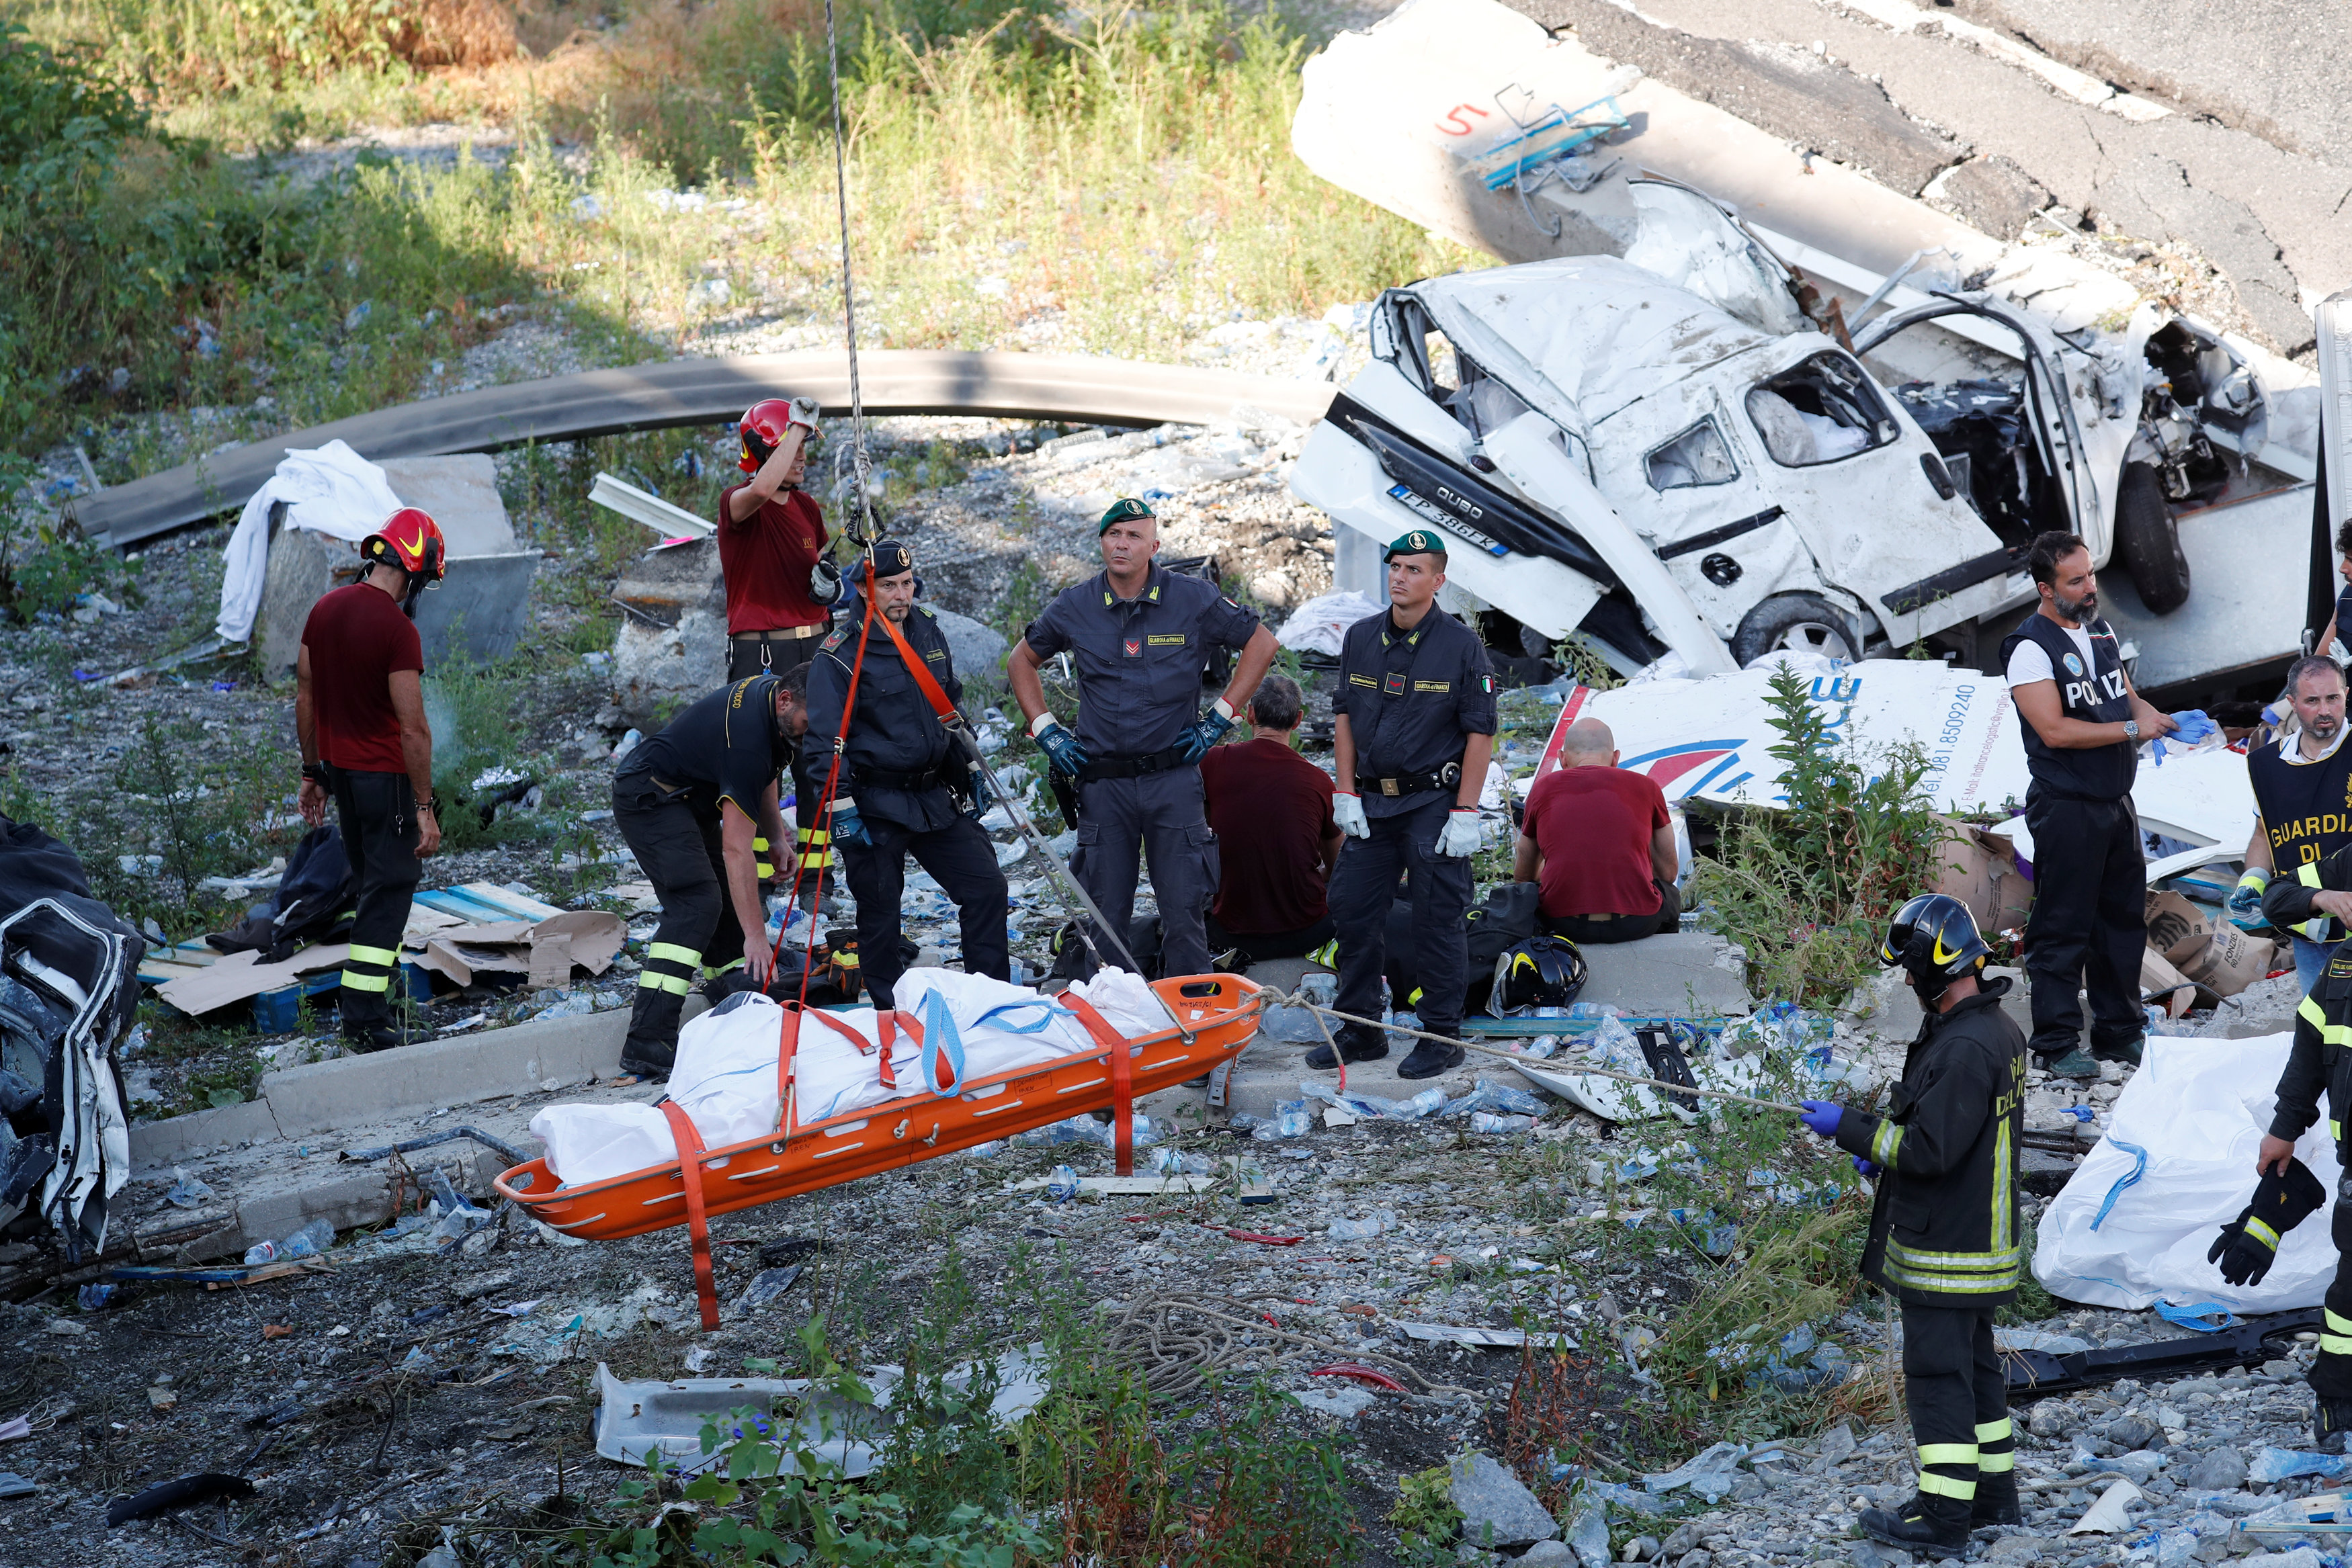 Rescue workers recover a body at the site of the collapsed Morandi Bridge in the Italian port city of Genoa